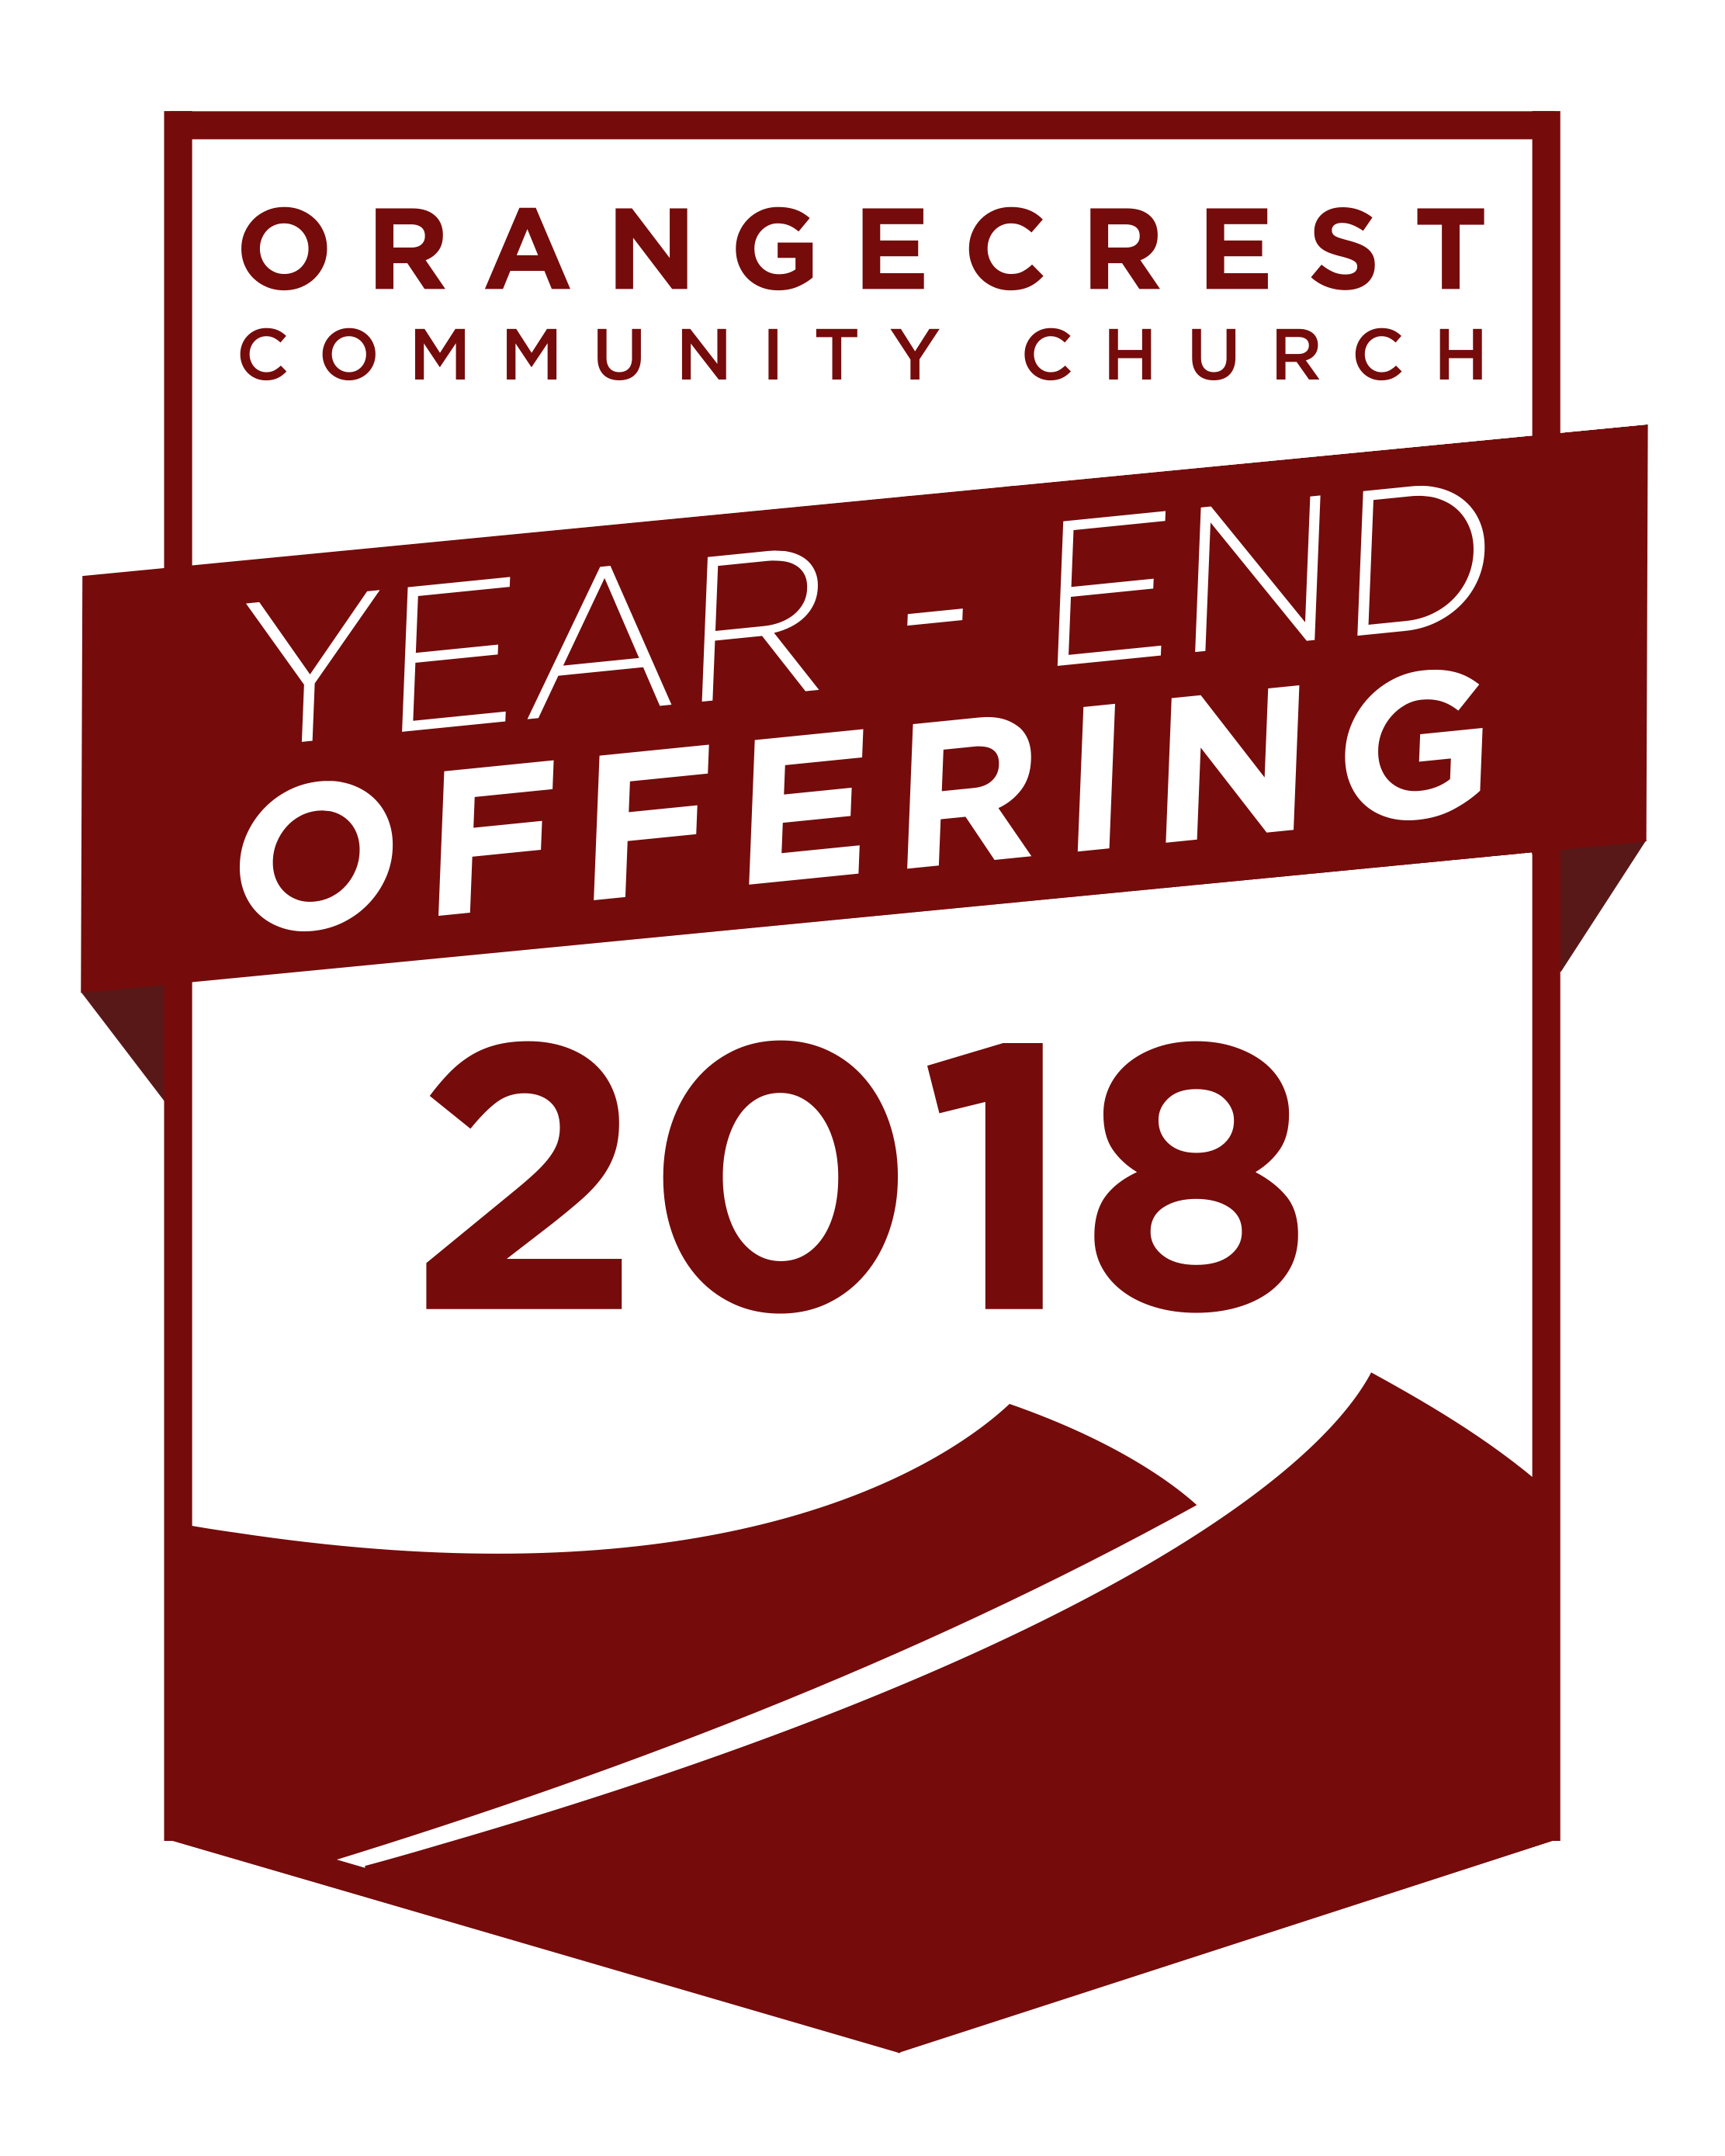 Year-End Offering_2018.1 - Red.png